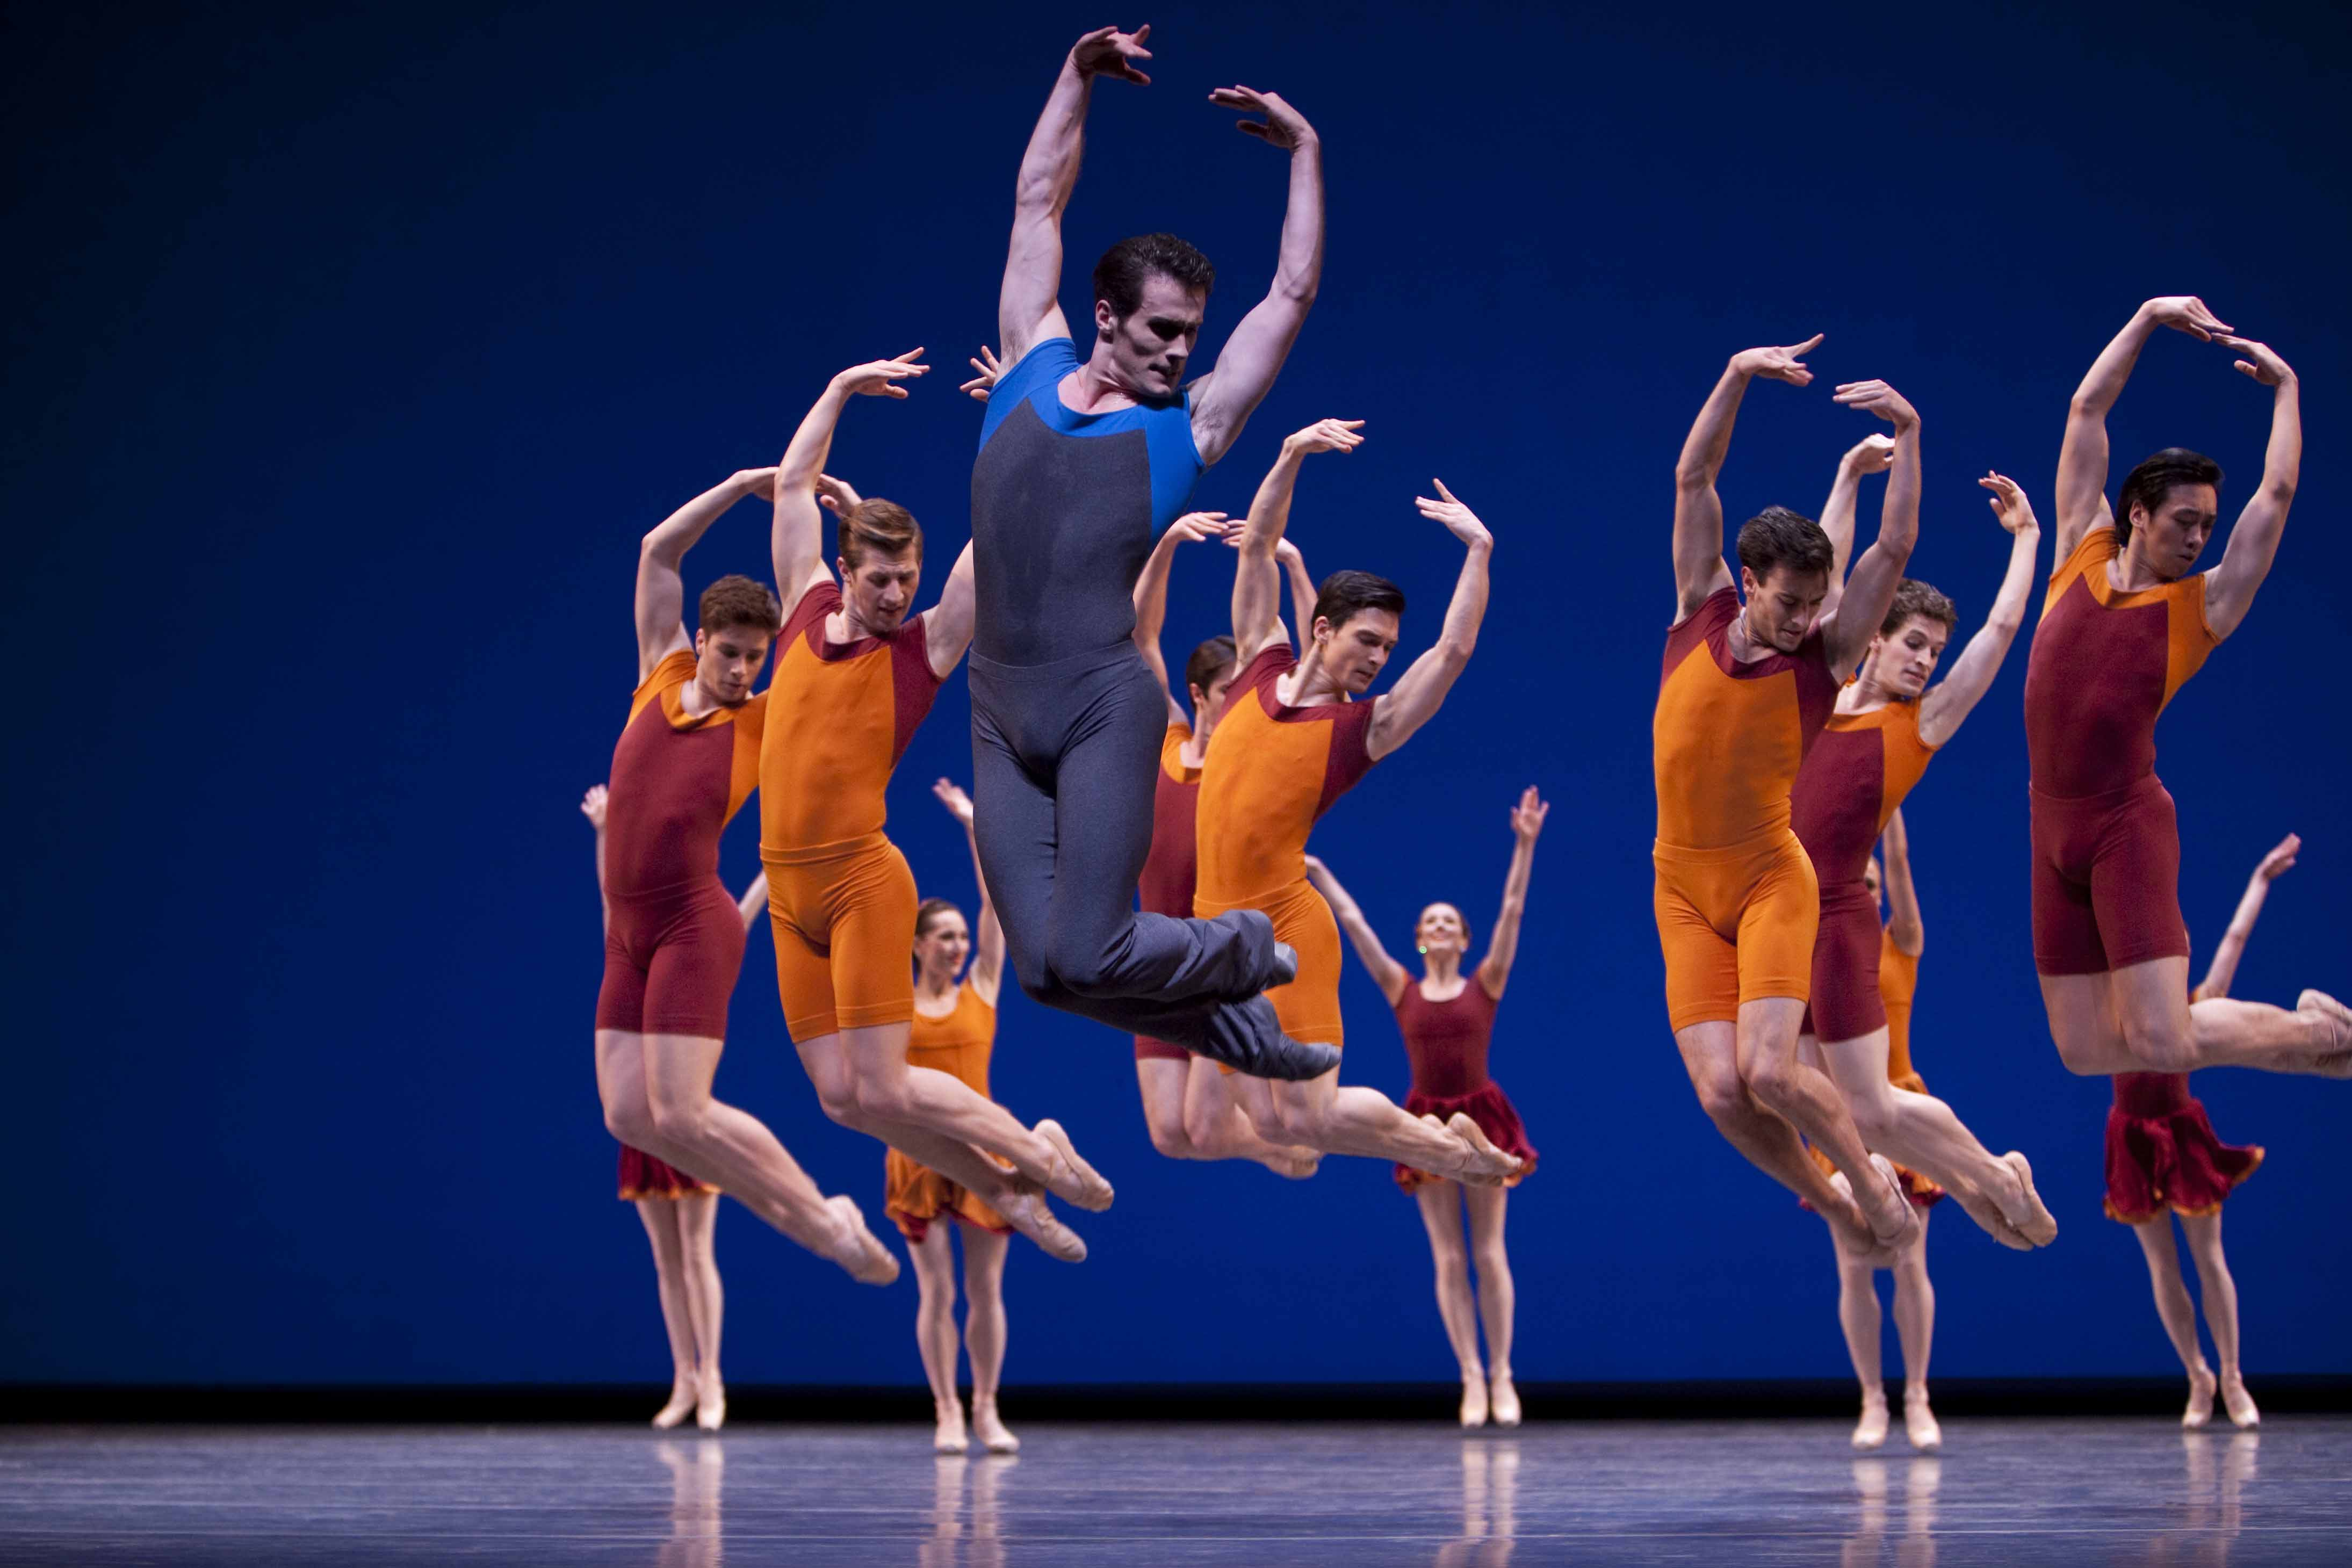 Pacific Northwest Ballet principal dancer Seth Orza with company dancers in Alexei Ratmansky's Concerto DSCH. Photo © Angela Sterling.